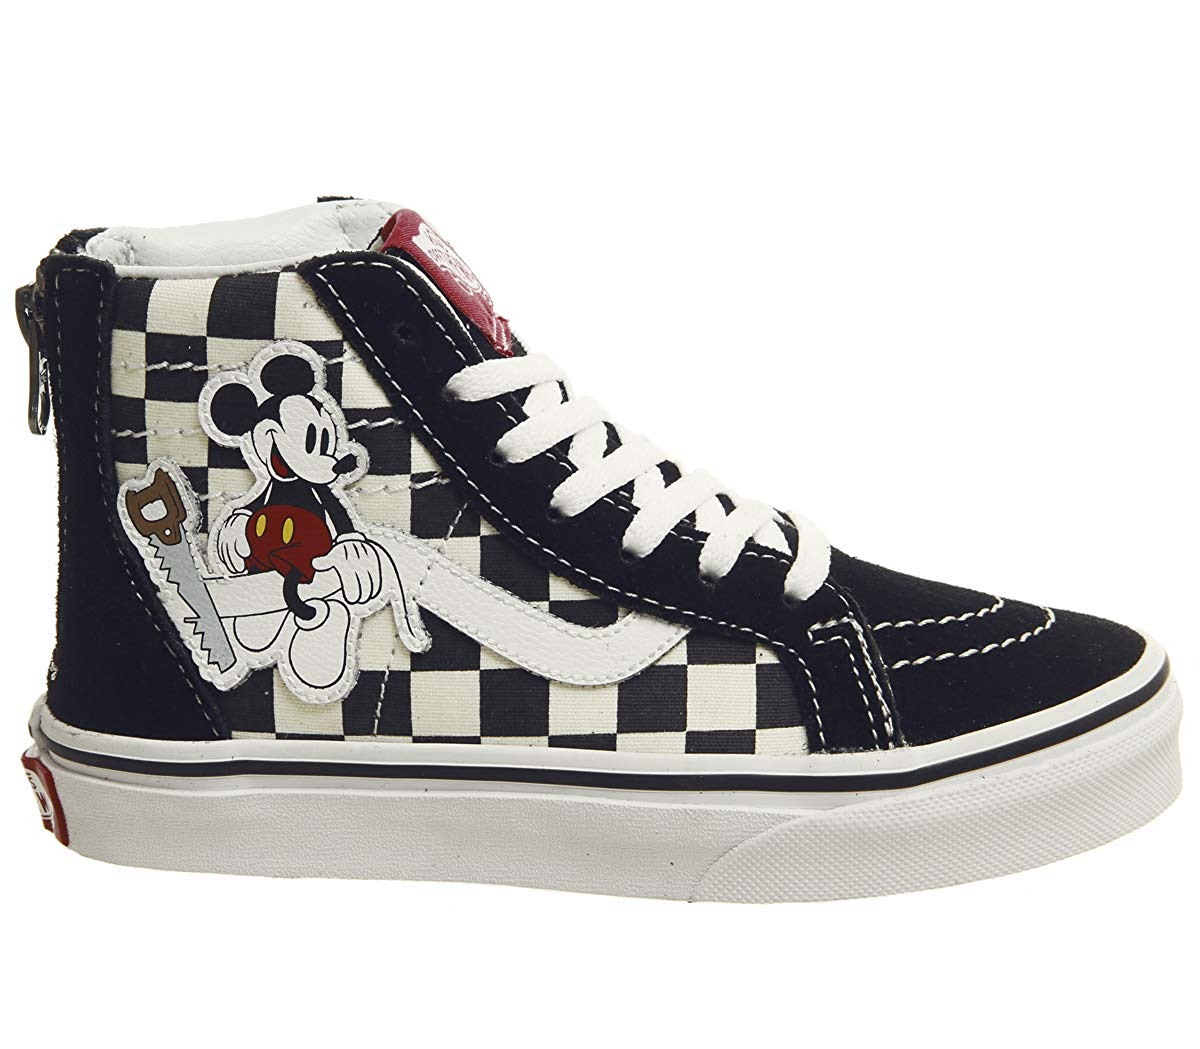 Details zu Vans Kids Youth x Disney Mickey Mouse 90th Anniversary Sk8 Hi Zip Shoes